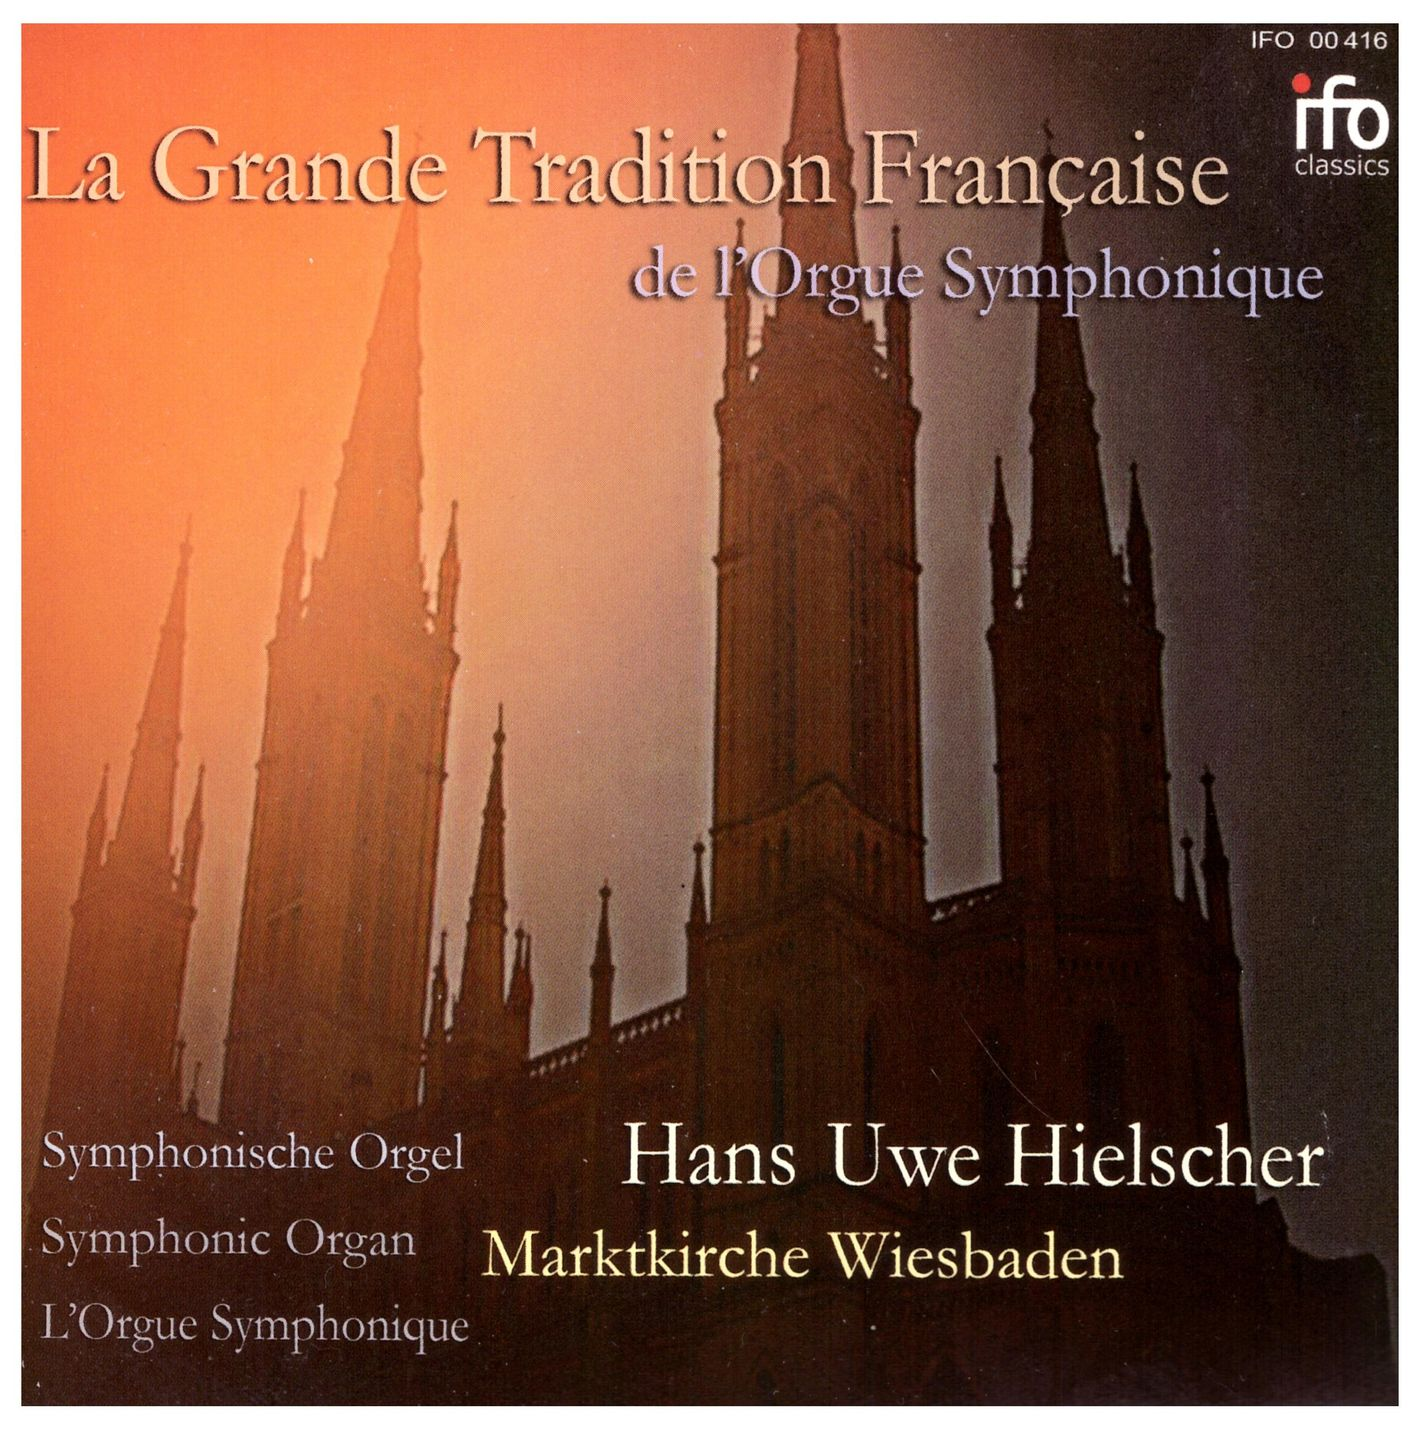 The Great Tradition of<br>French Symphonic Organ Music